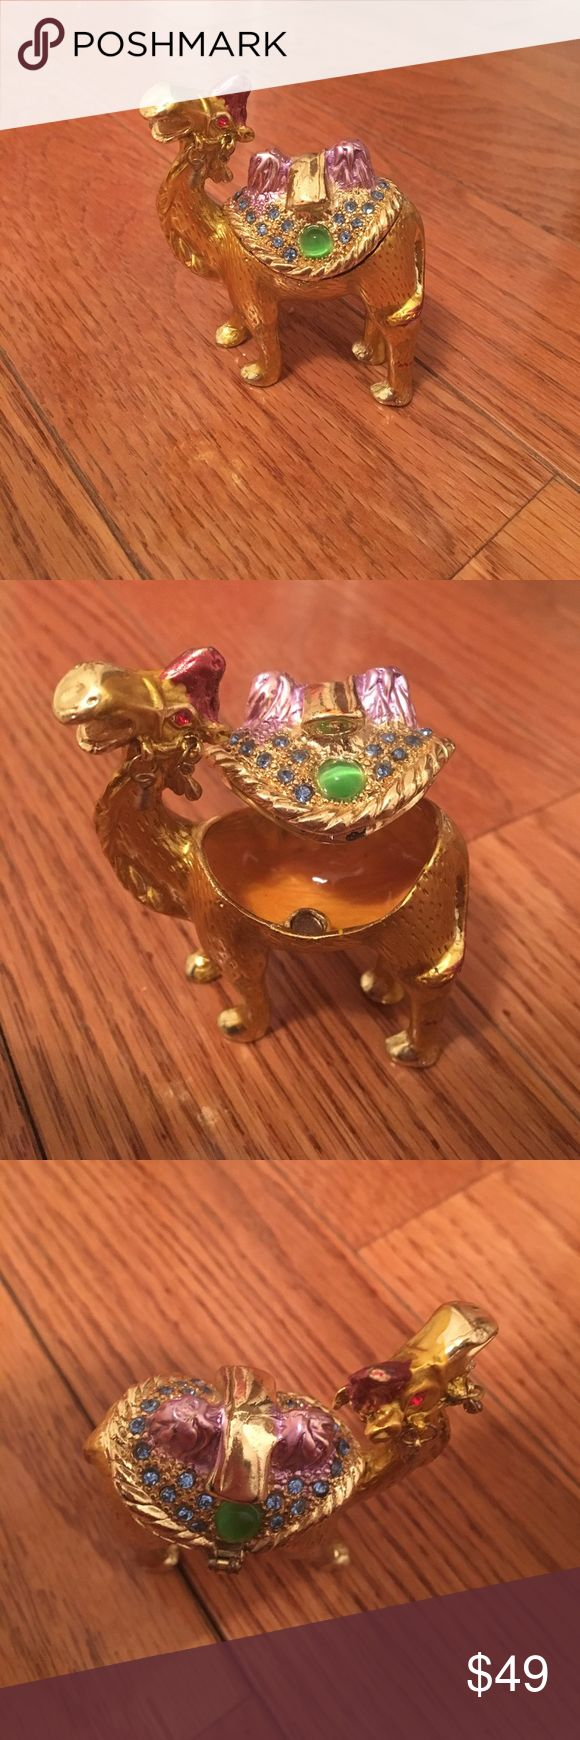 Camel jewelry holder New Other